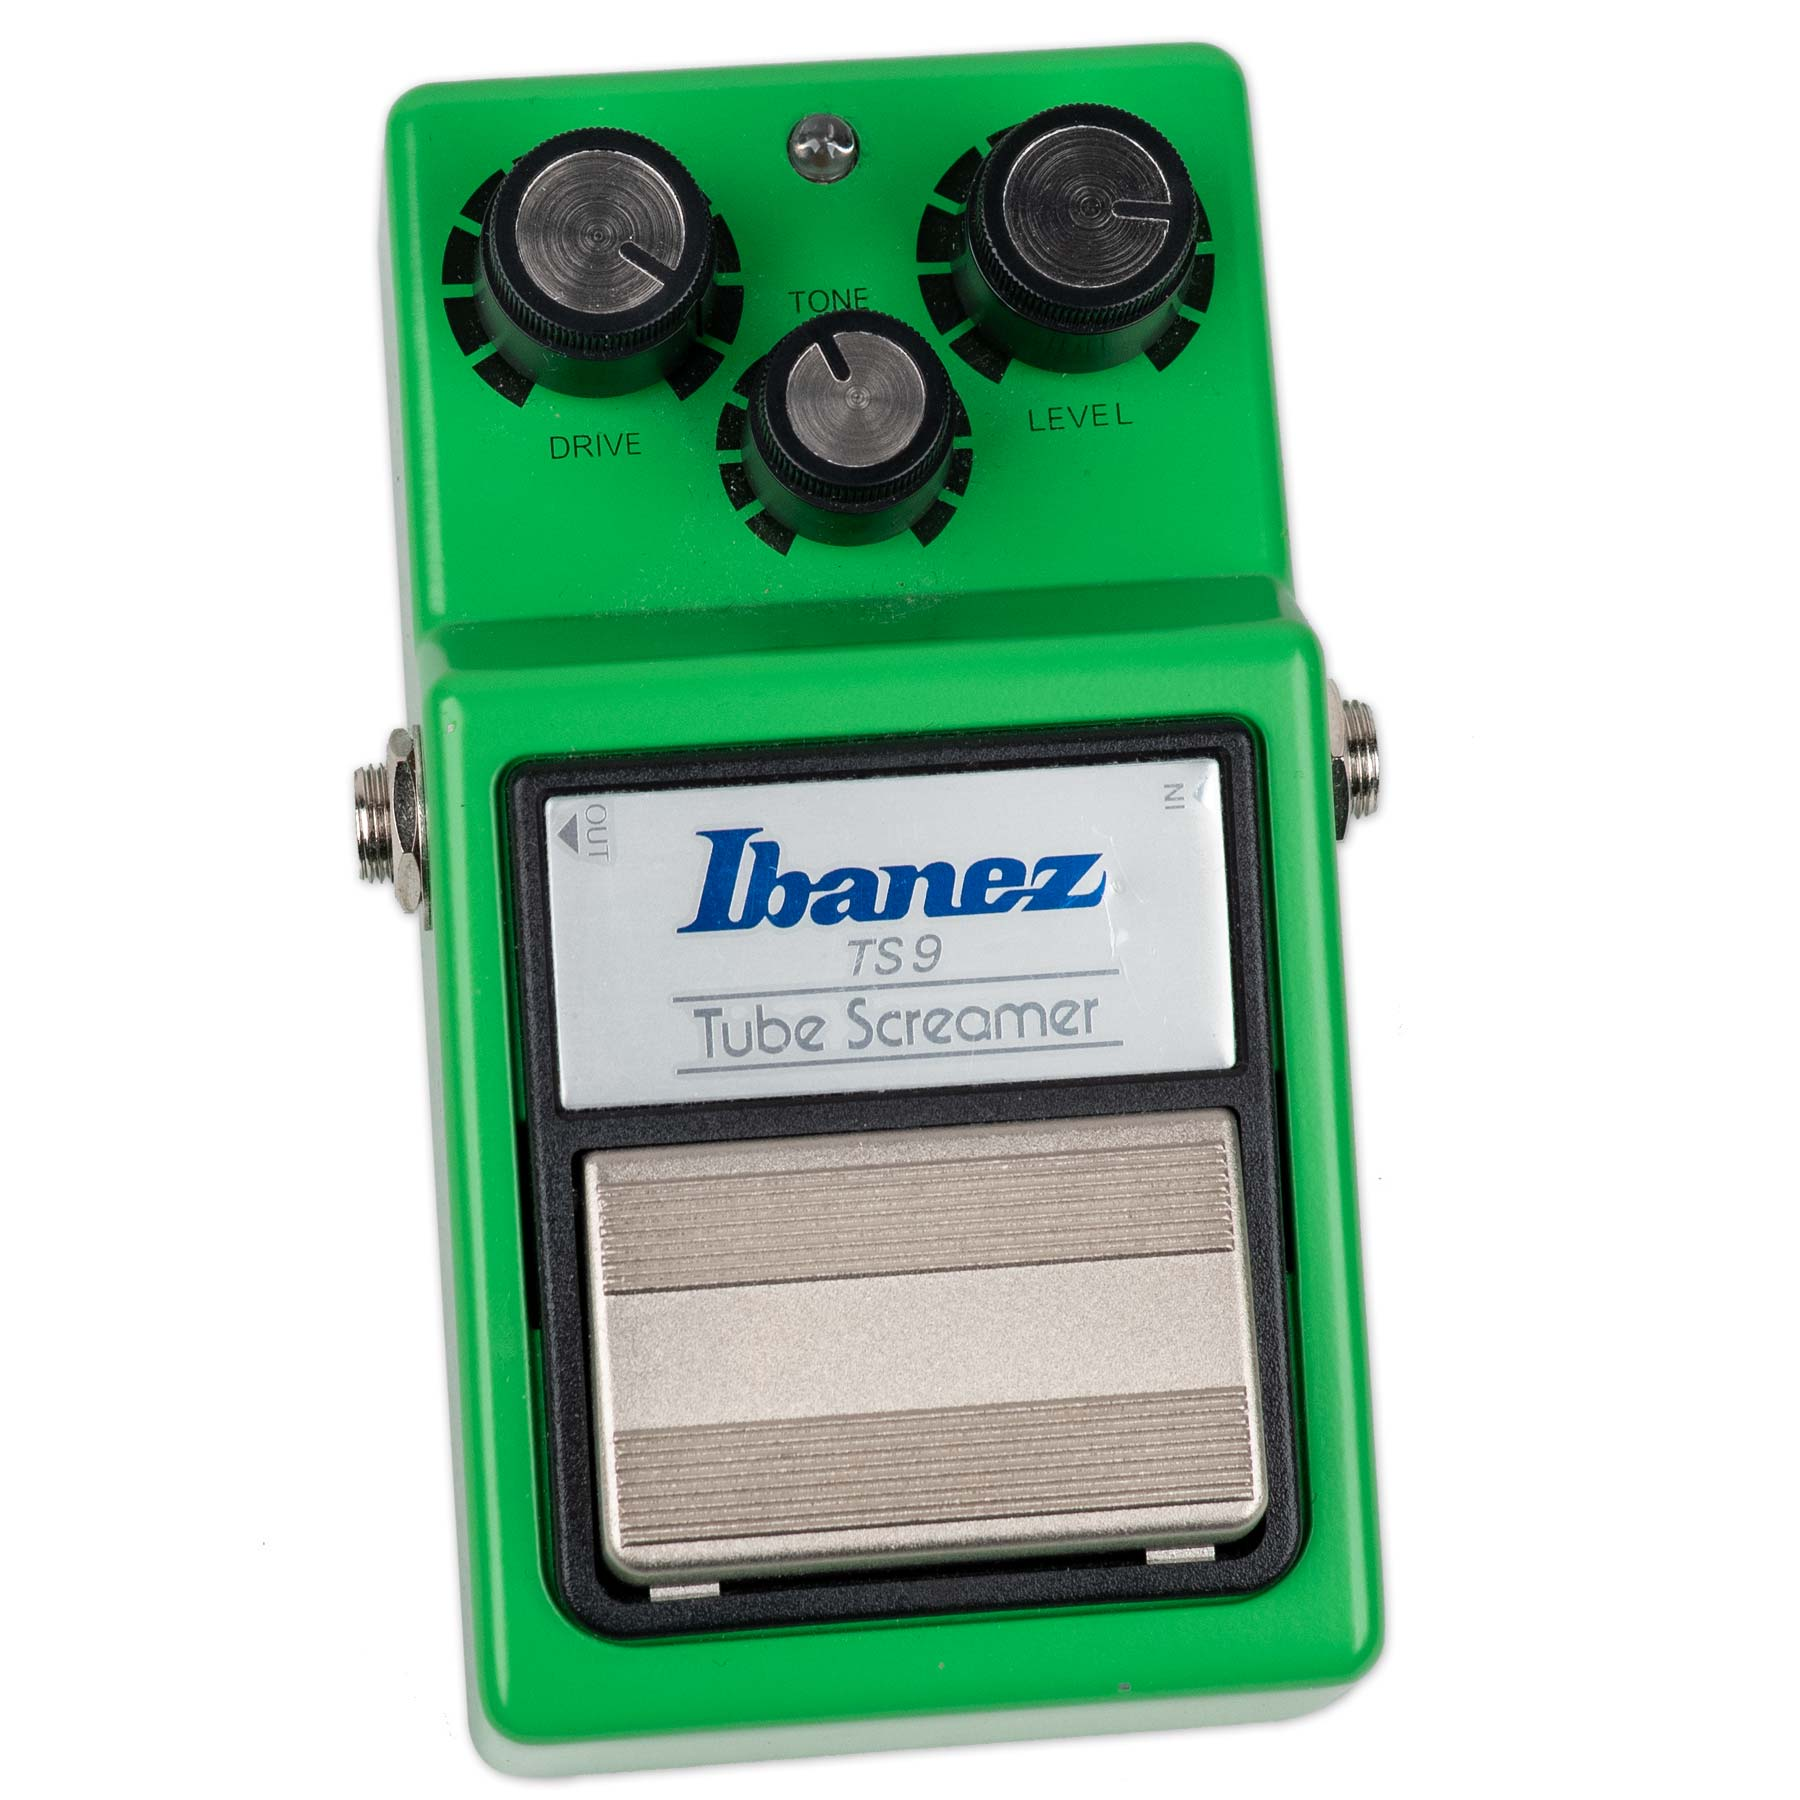 USED IBANEZ TS9 TUBE SCREAMER